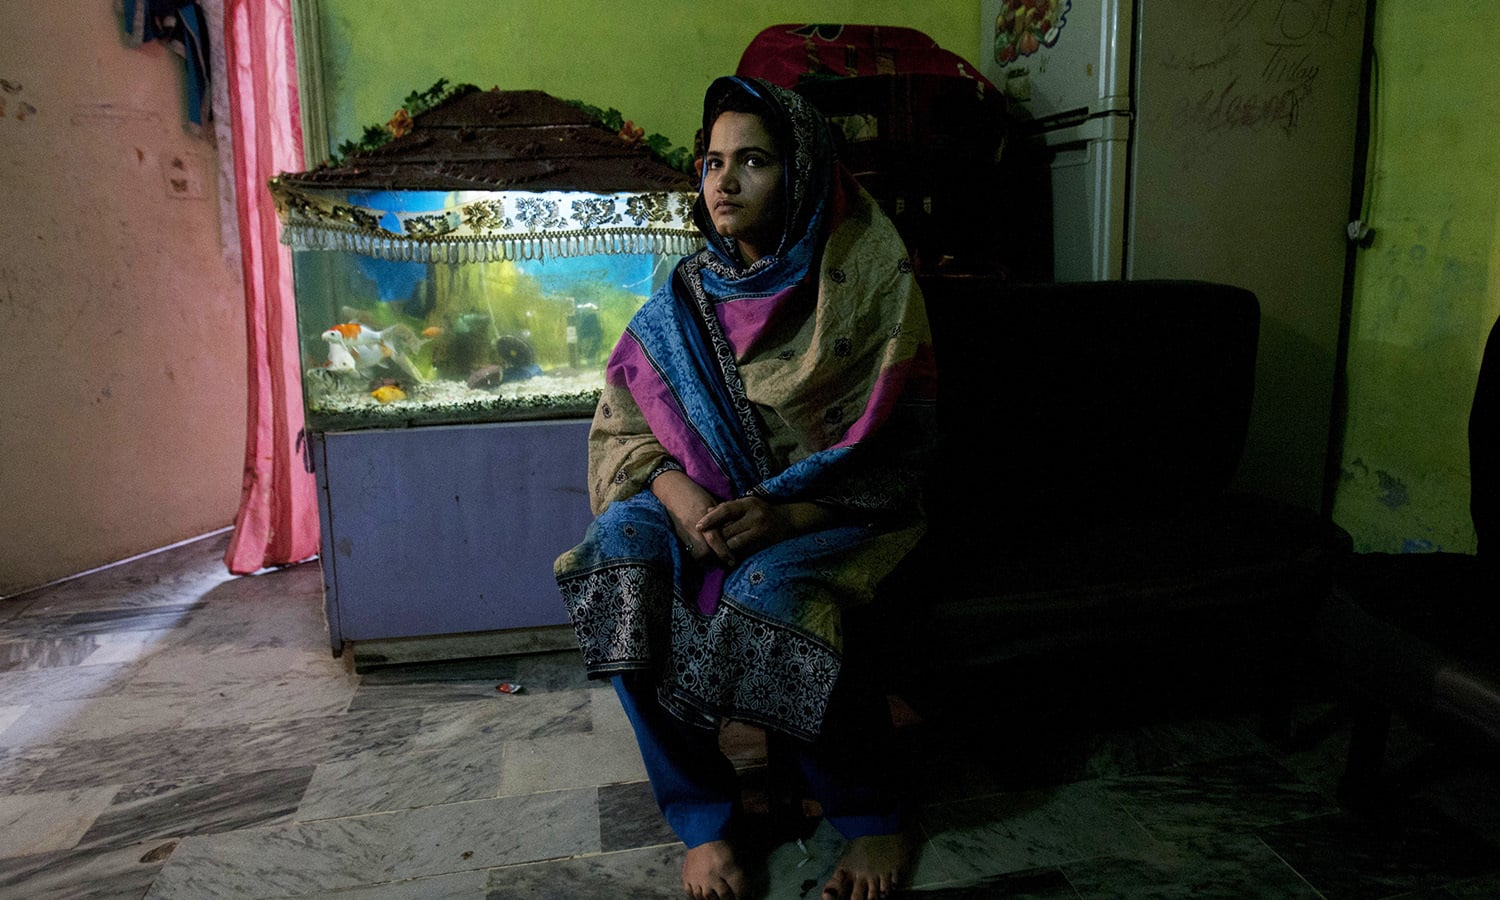 In this photo taken on Jan 26, 2016, Kainaat Soomro sits in her home in Karachi, Pakistan.—AP